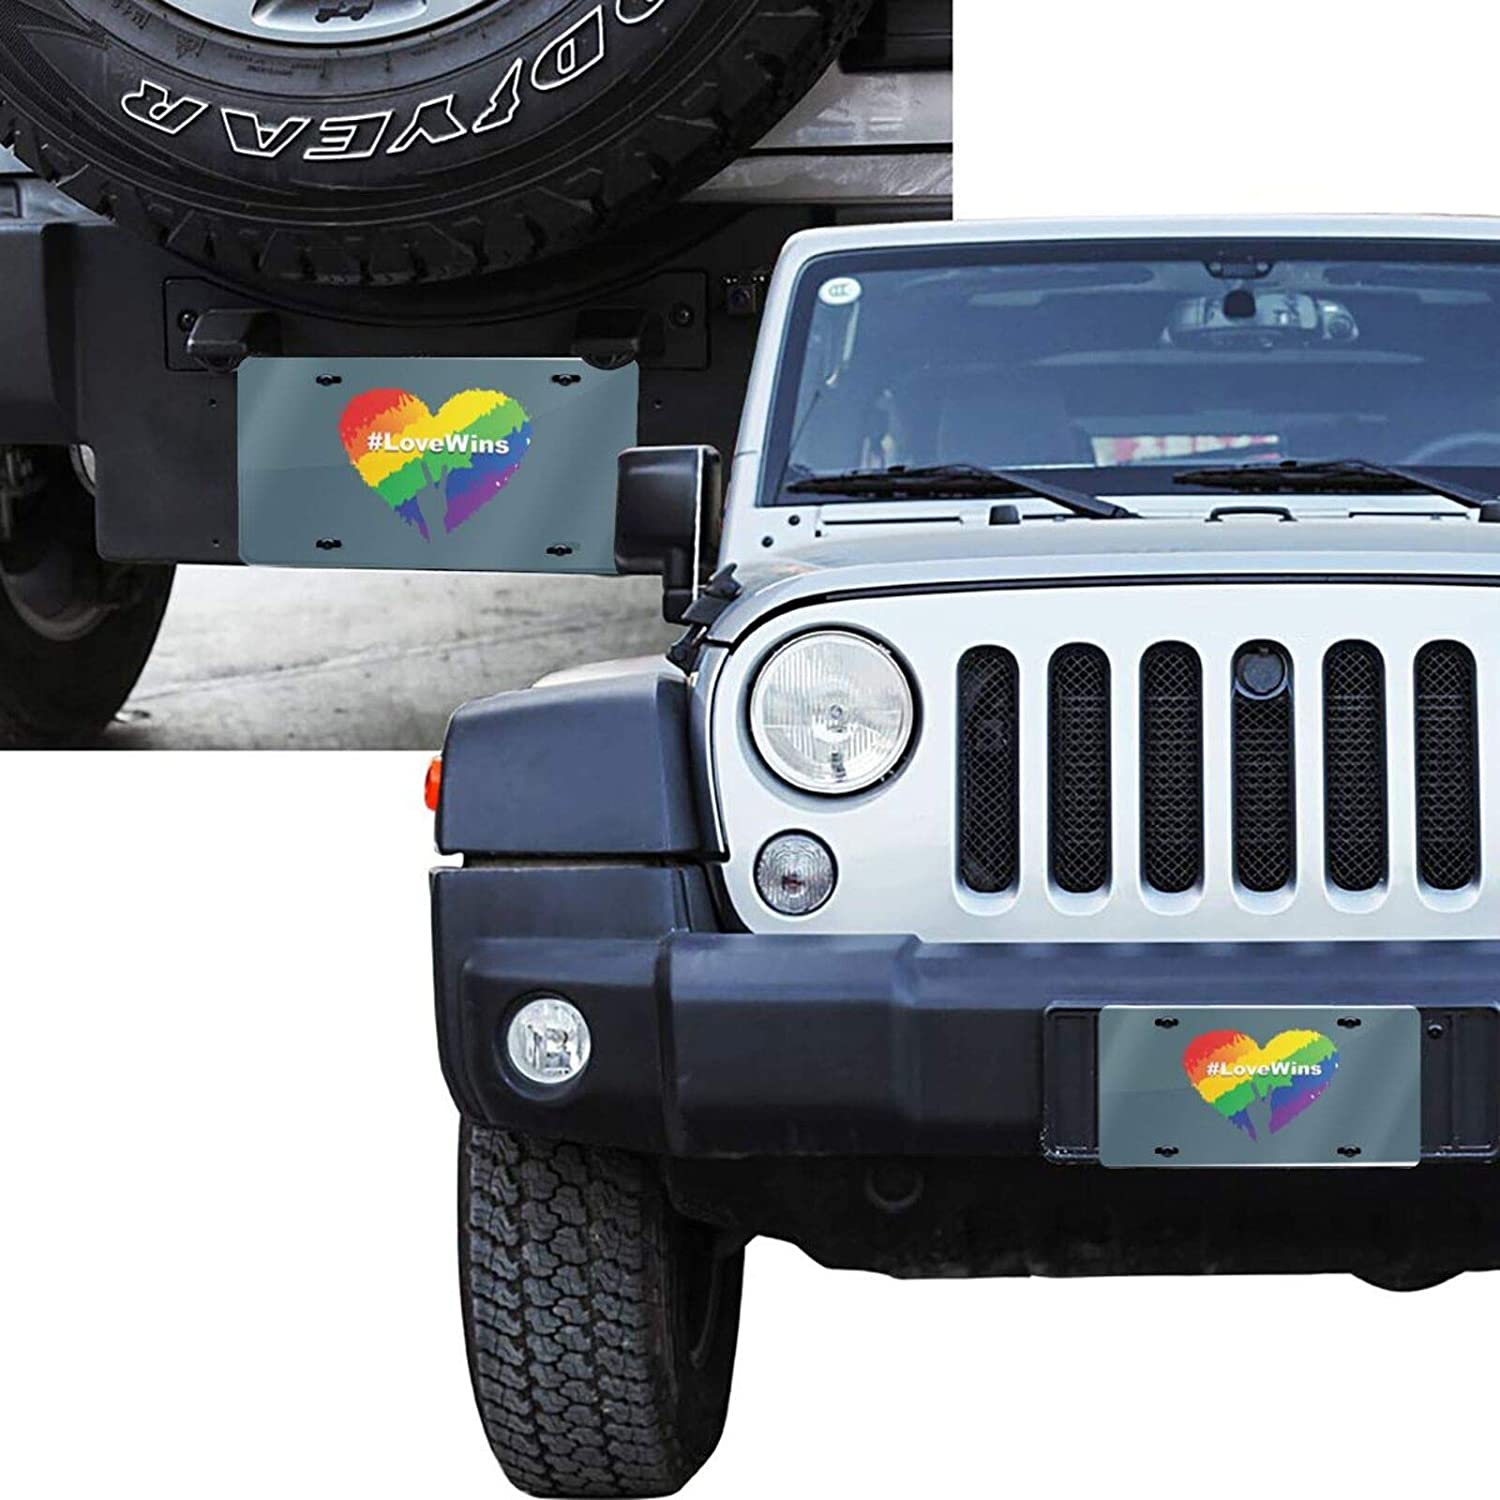 6 X 12 Aluminum License Plate Pride Heart Love Wins Customized USA Car Tag Front License Plate Miniisoul Wall Decoration License Plate Personalized